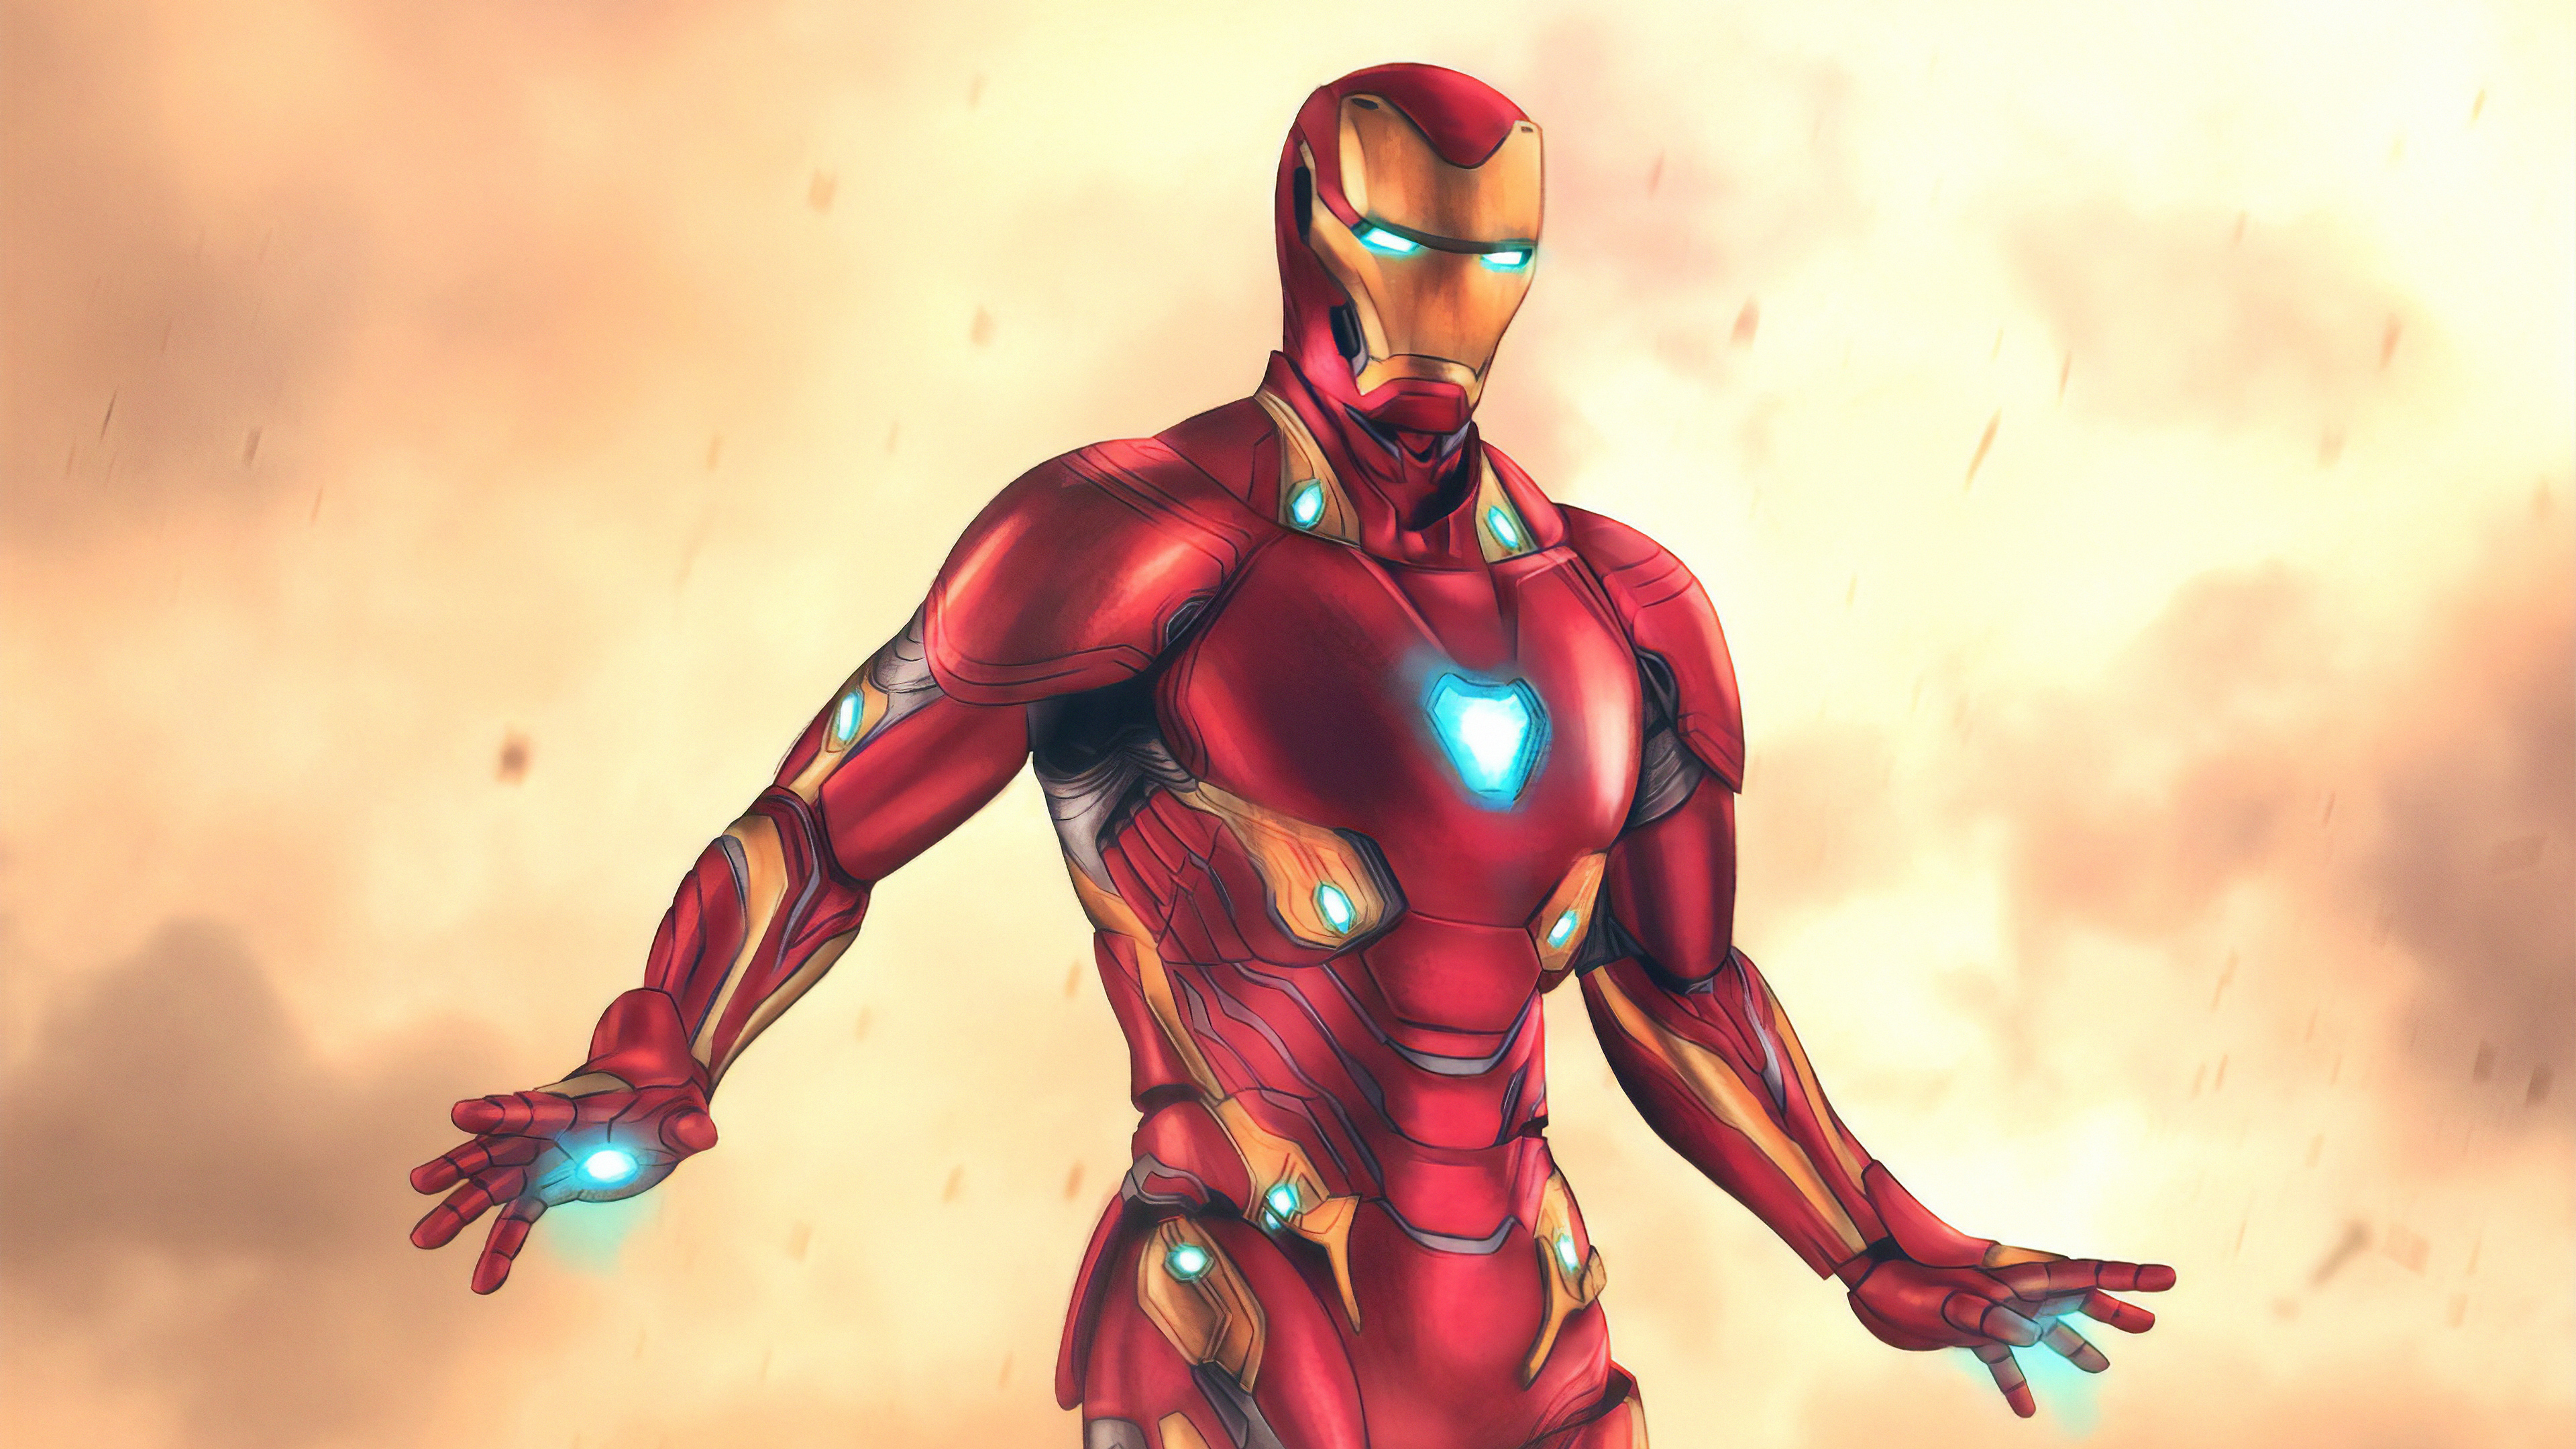 iron man flying 1570394674 - Iron Man Flying - superheroes wallpapers, iron man wallpapers, hd-wallpapers, digital art wallpapers, artwork wallpapers, artstation wallpapers, 4k-wallpapers